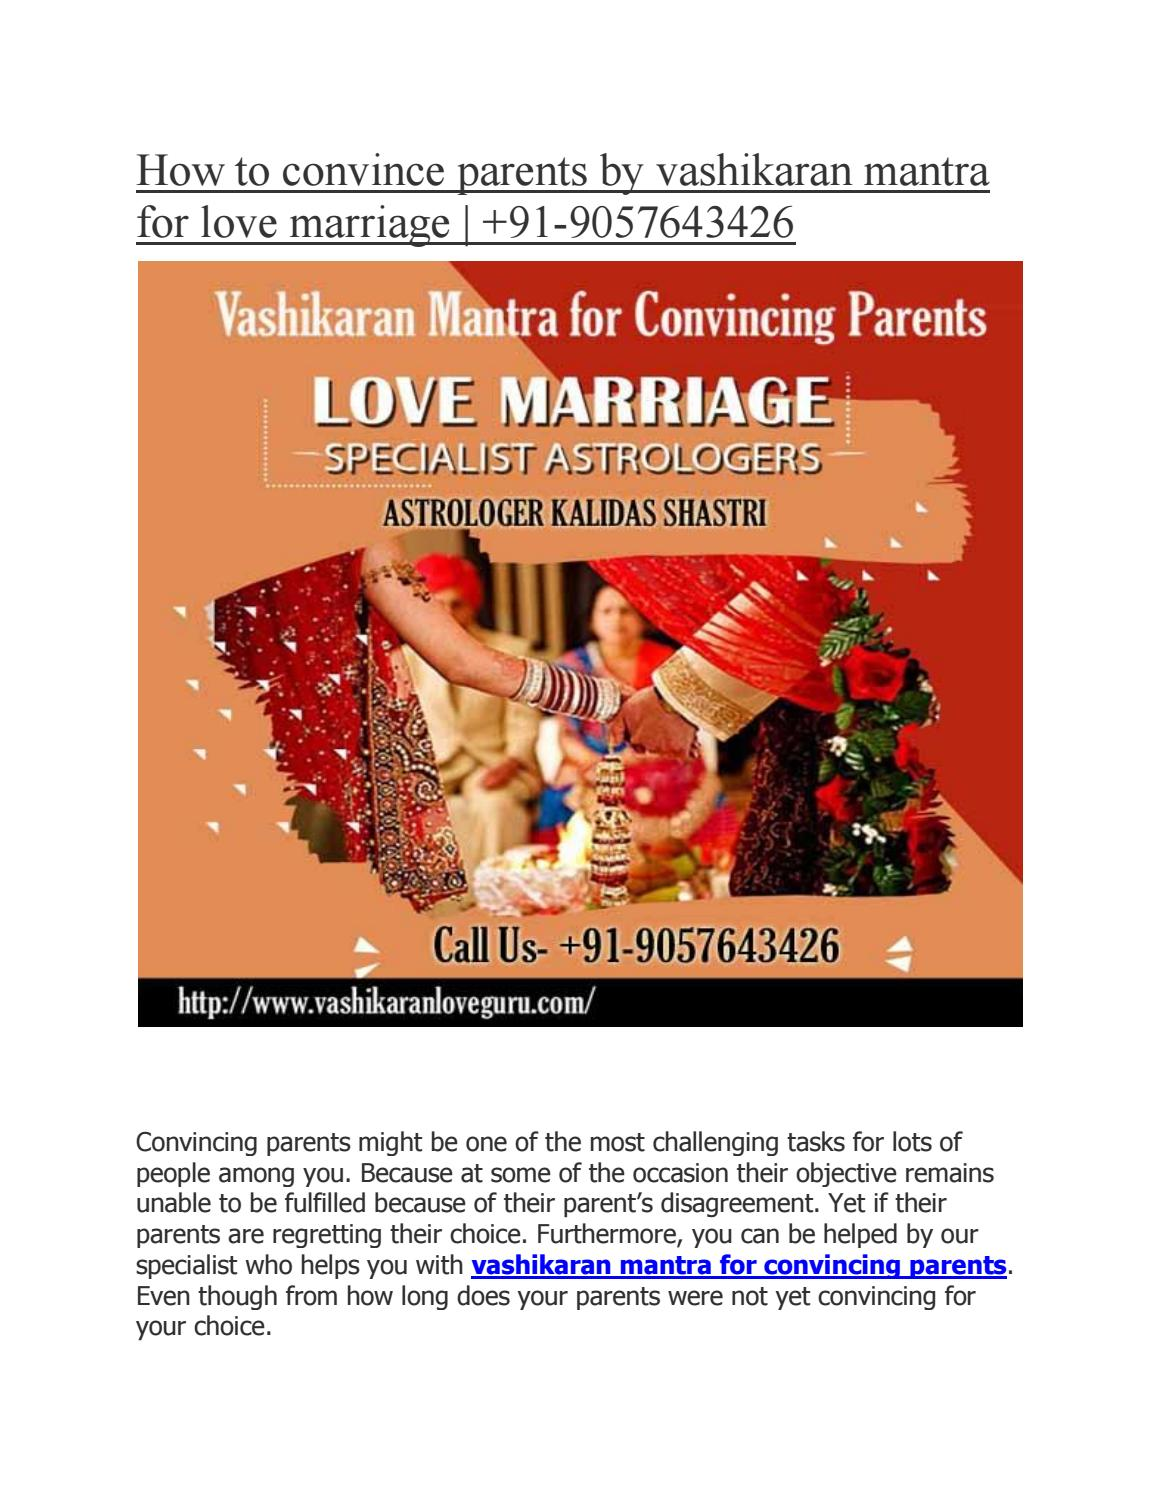 How to convince parents by vashikaran mantra for love